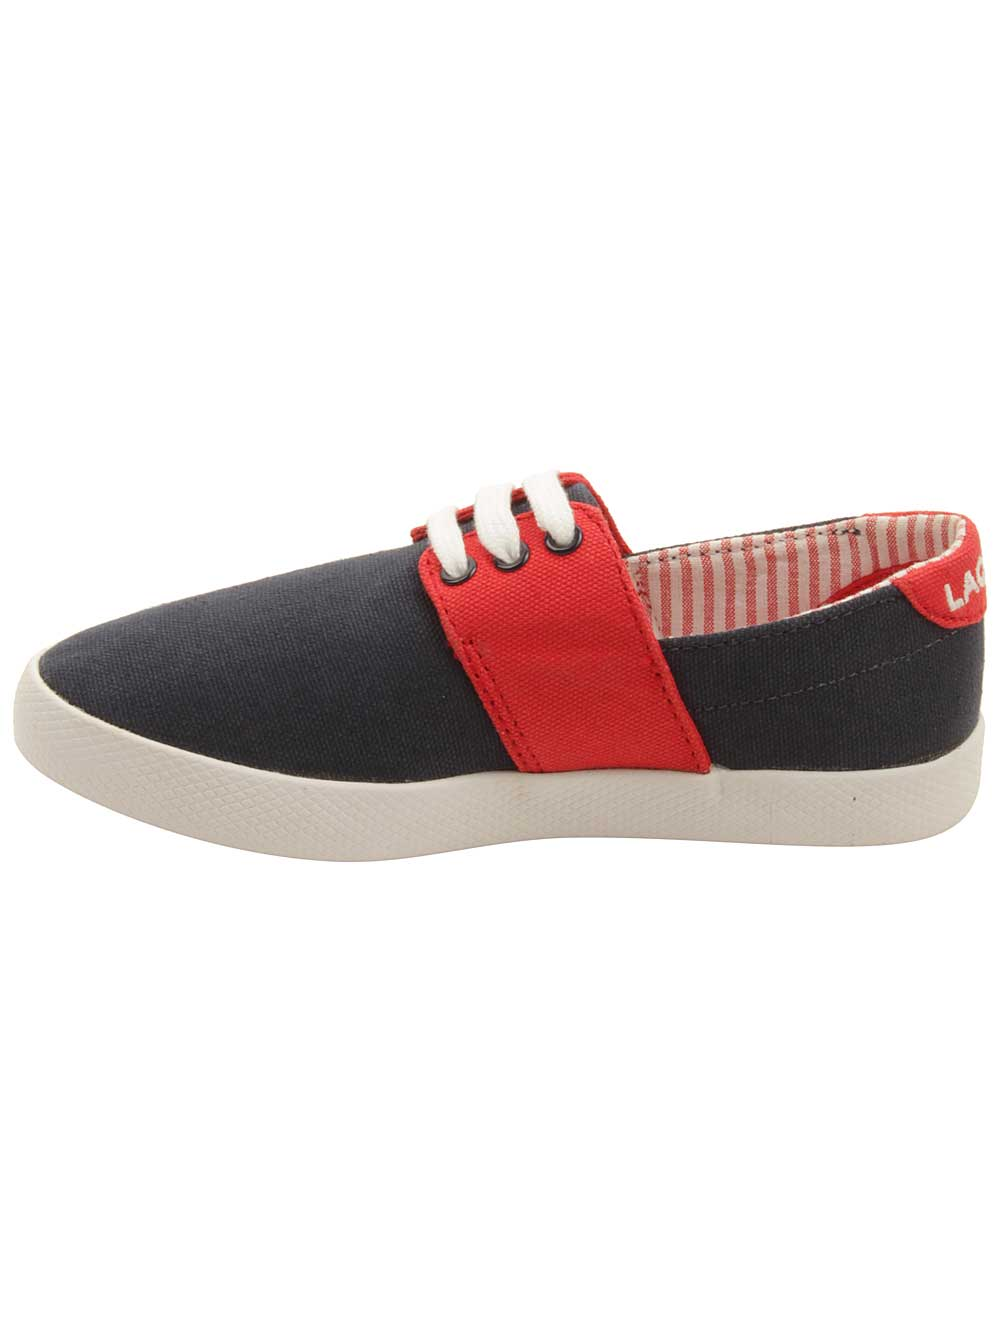 6f837ce2d5c4f Lacoste - Lacoste Toddler Fairchampe Lace Up 117 Sneakers in Navy Red -  Walmart.com